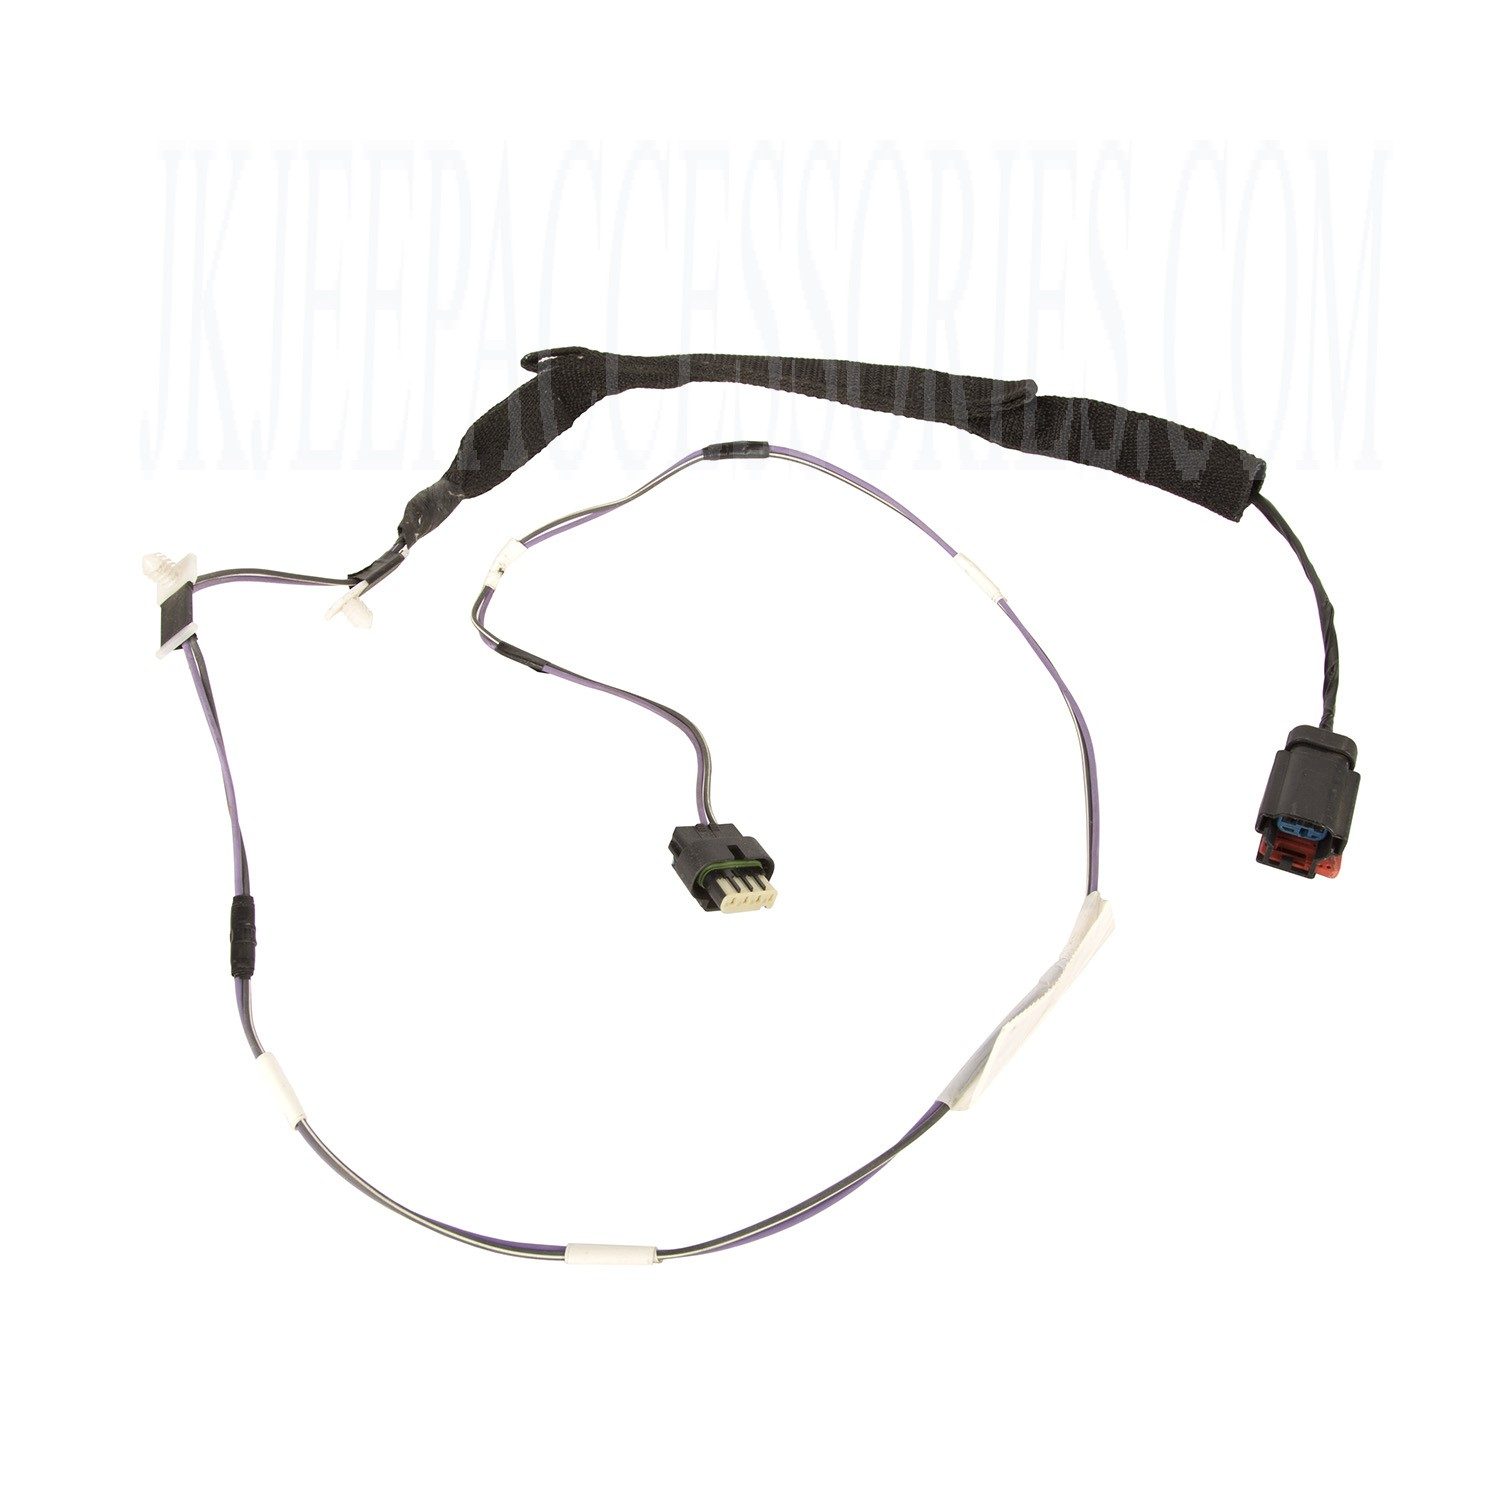 This Front Left Door Wiring Harness From Omix Ada Fits 07